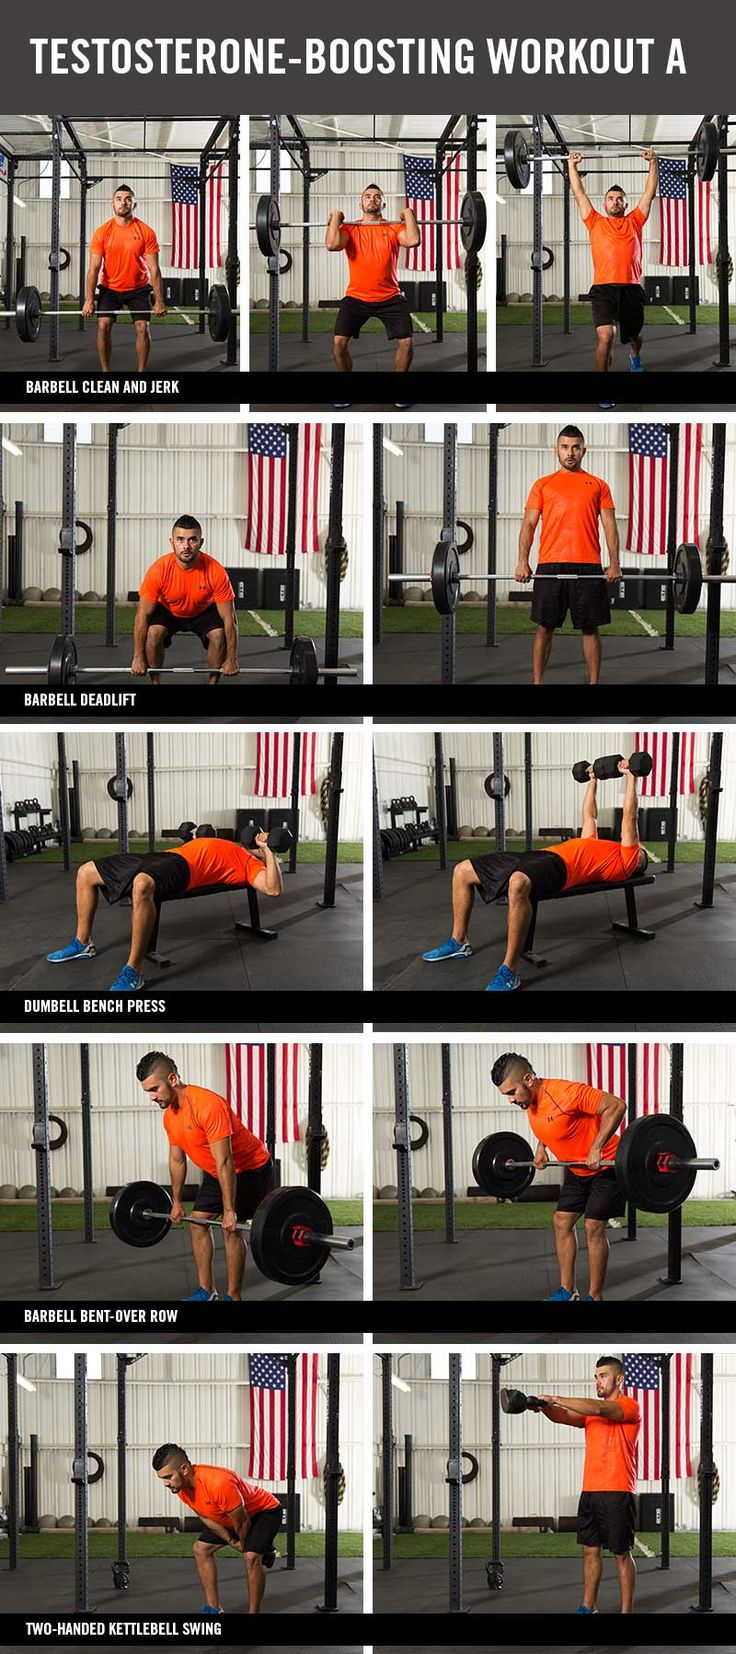 58 best images about ACE Upper Body Exercises on Pinterest ...